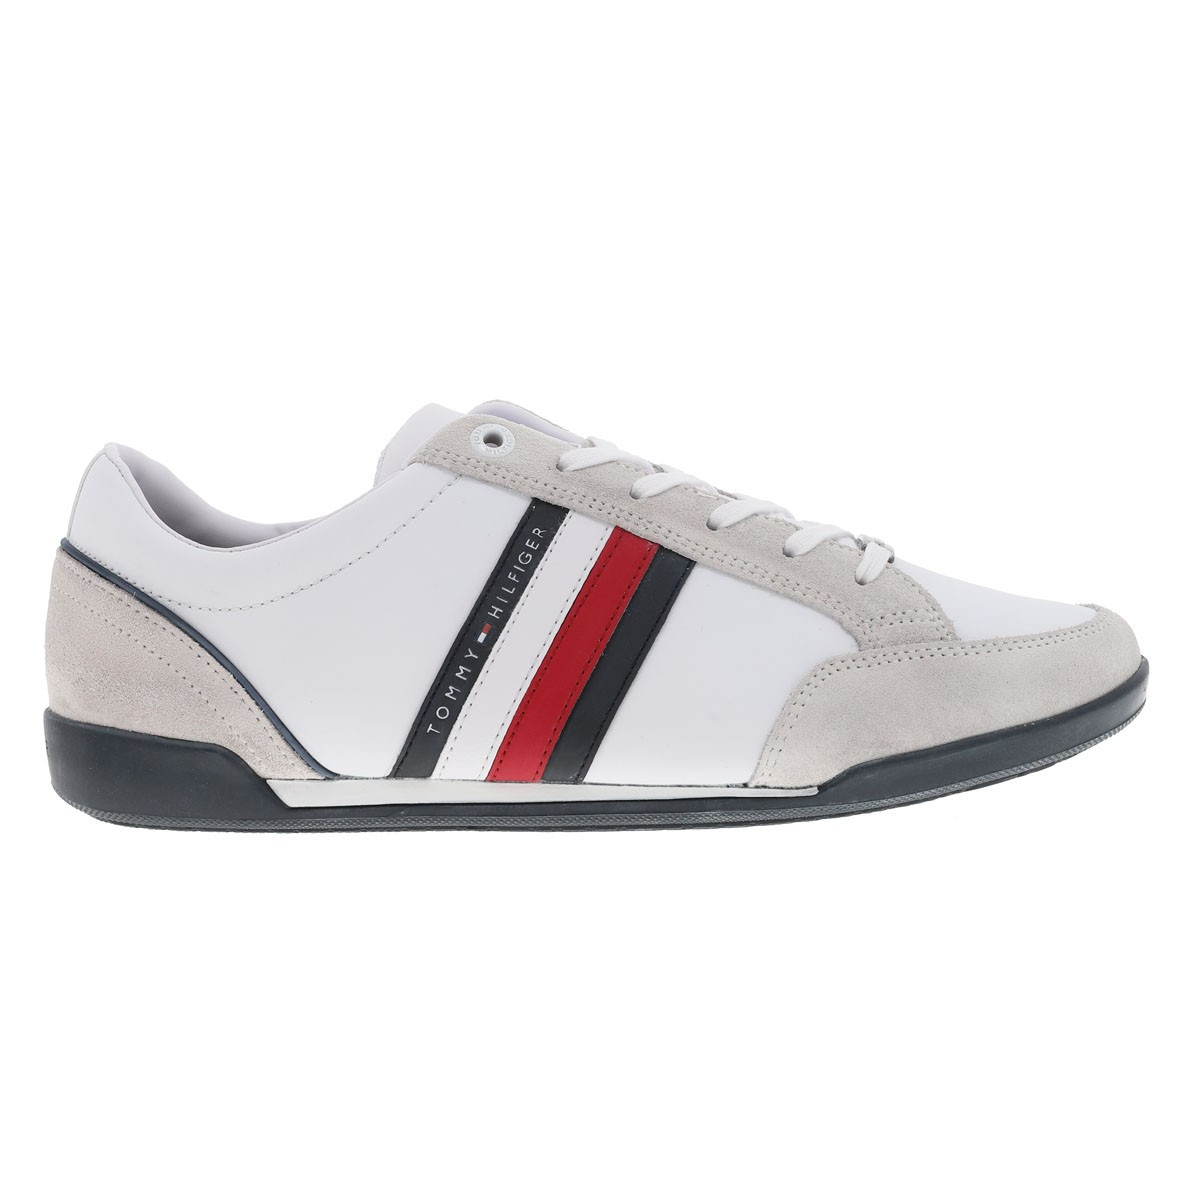 Ccv Corporate Homme Mode Blanc Jeans Baskets Tommy LjMqpGSUzV